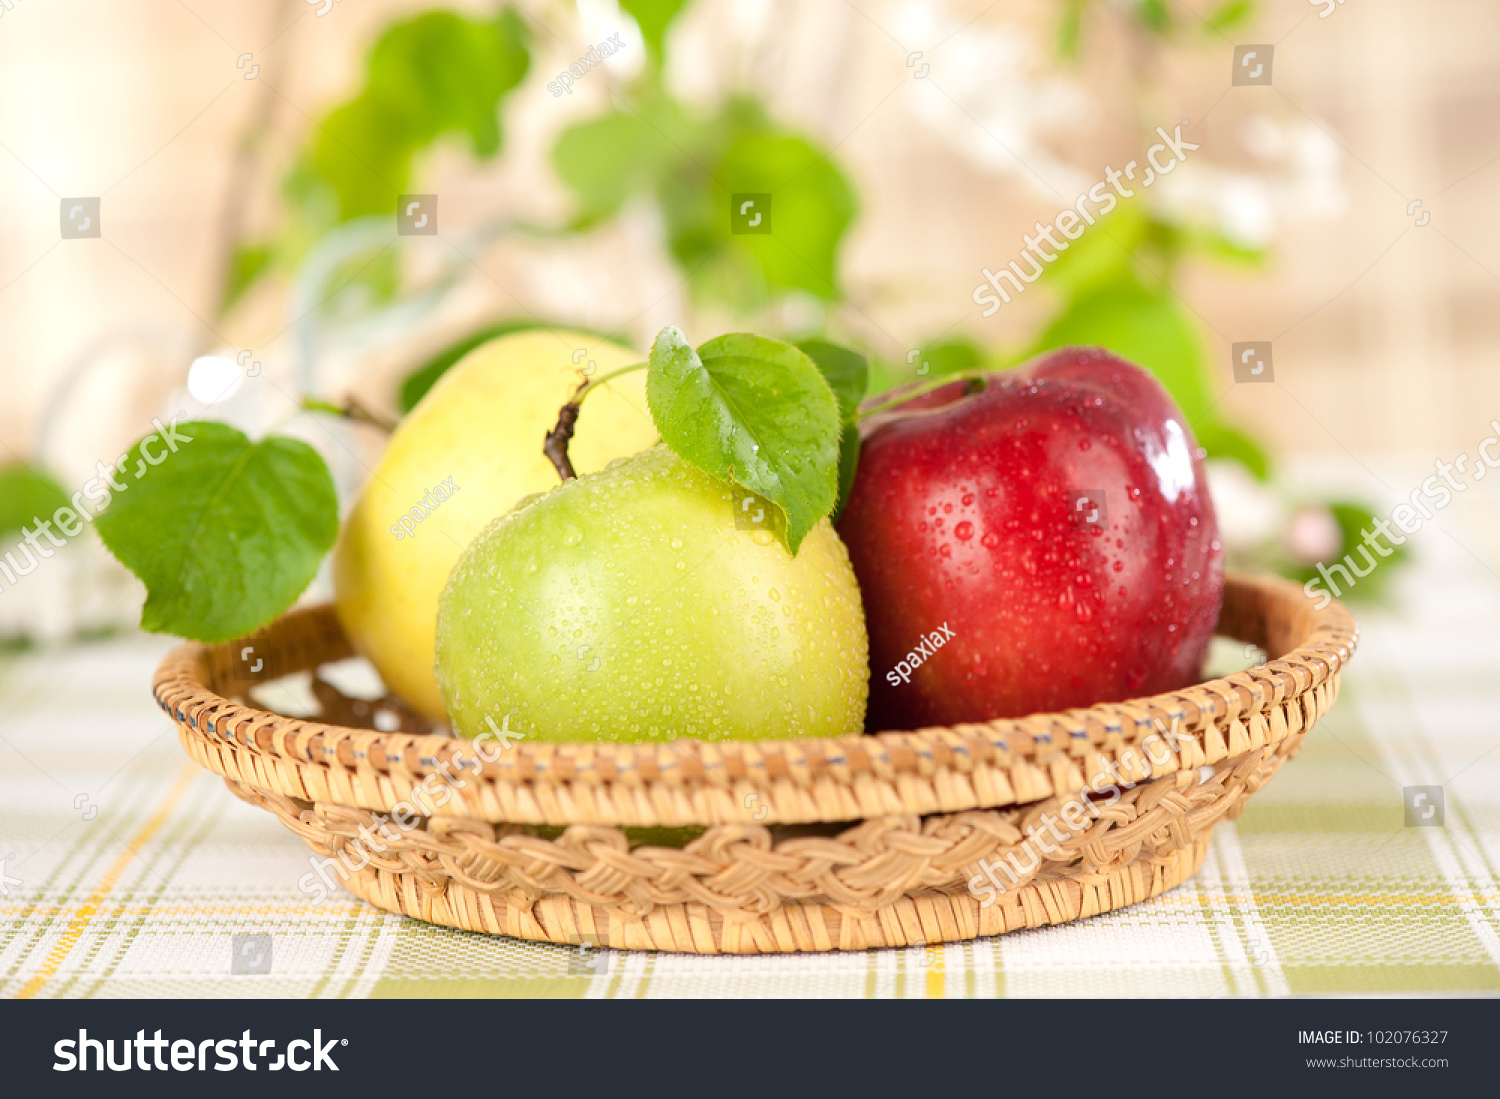 green and red apples in basket. juicy green and red apples in the basket r